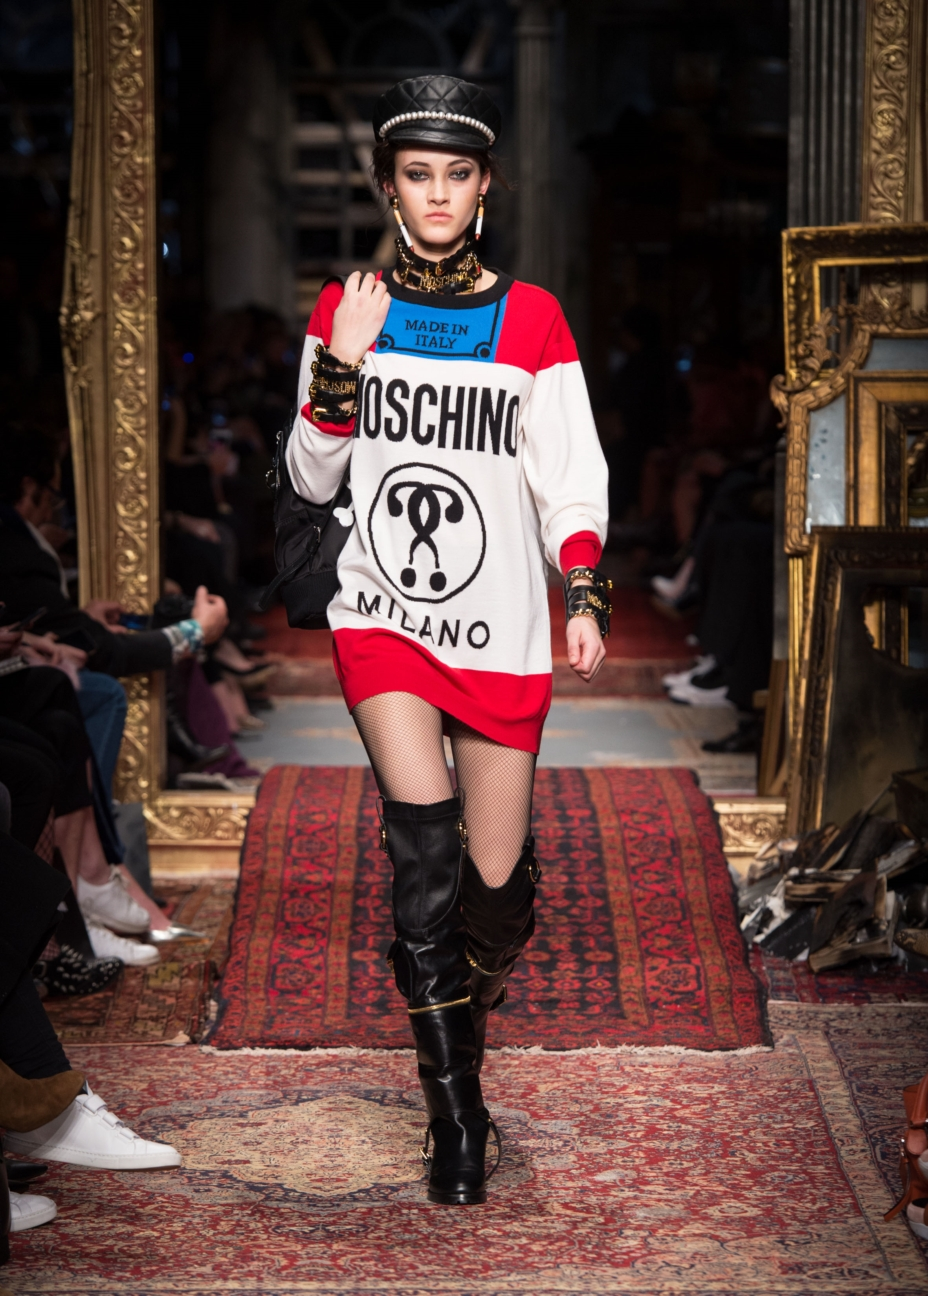 moschino-milan-fashion-week-aw-16-37